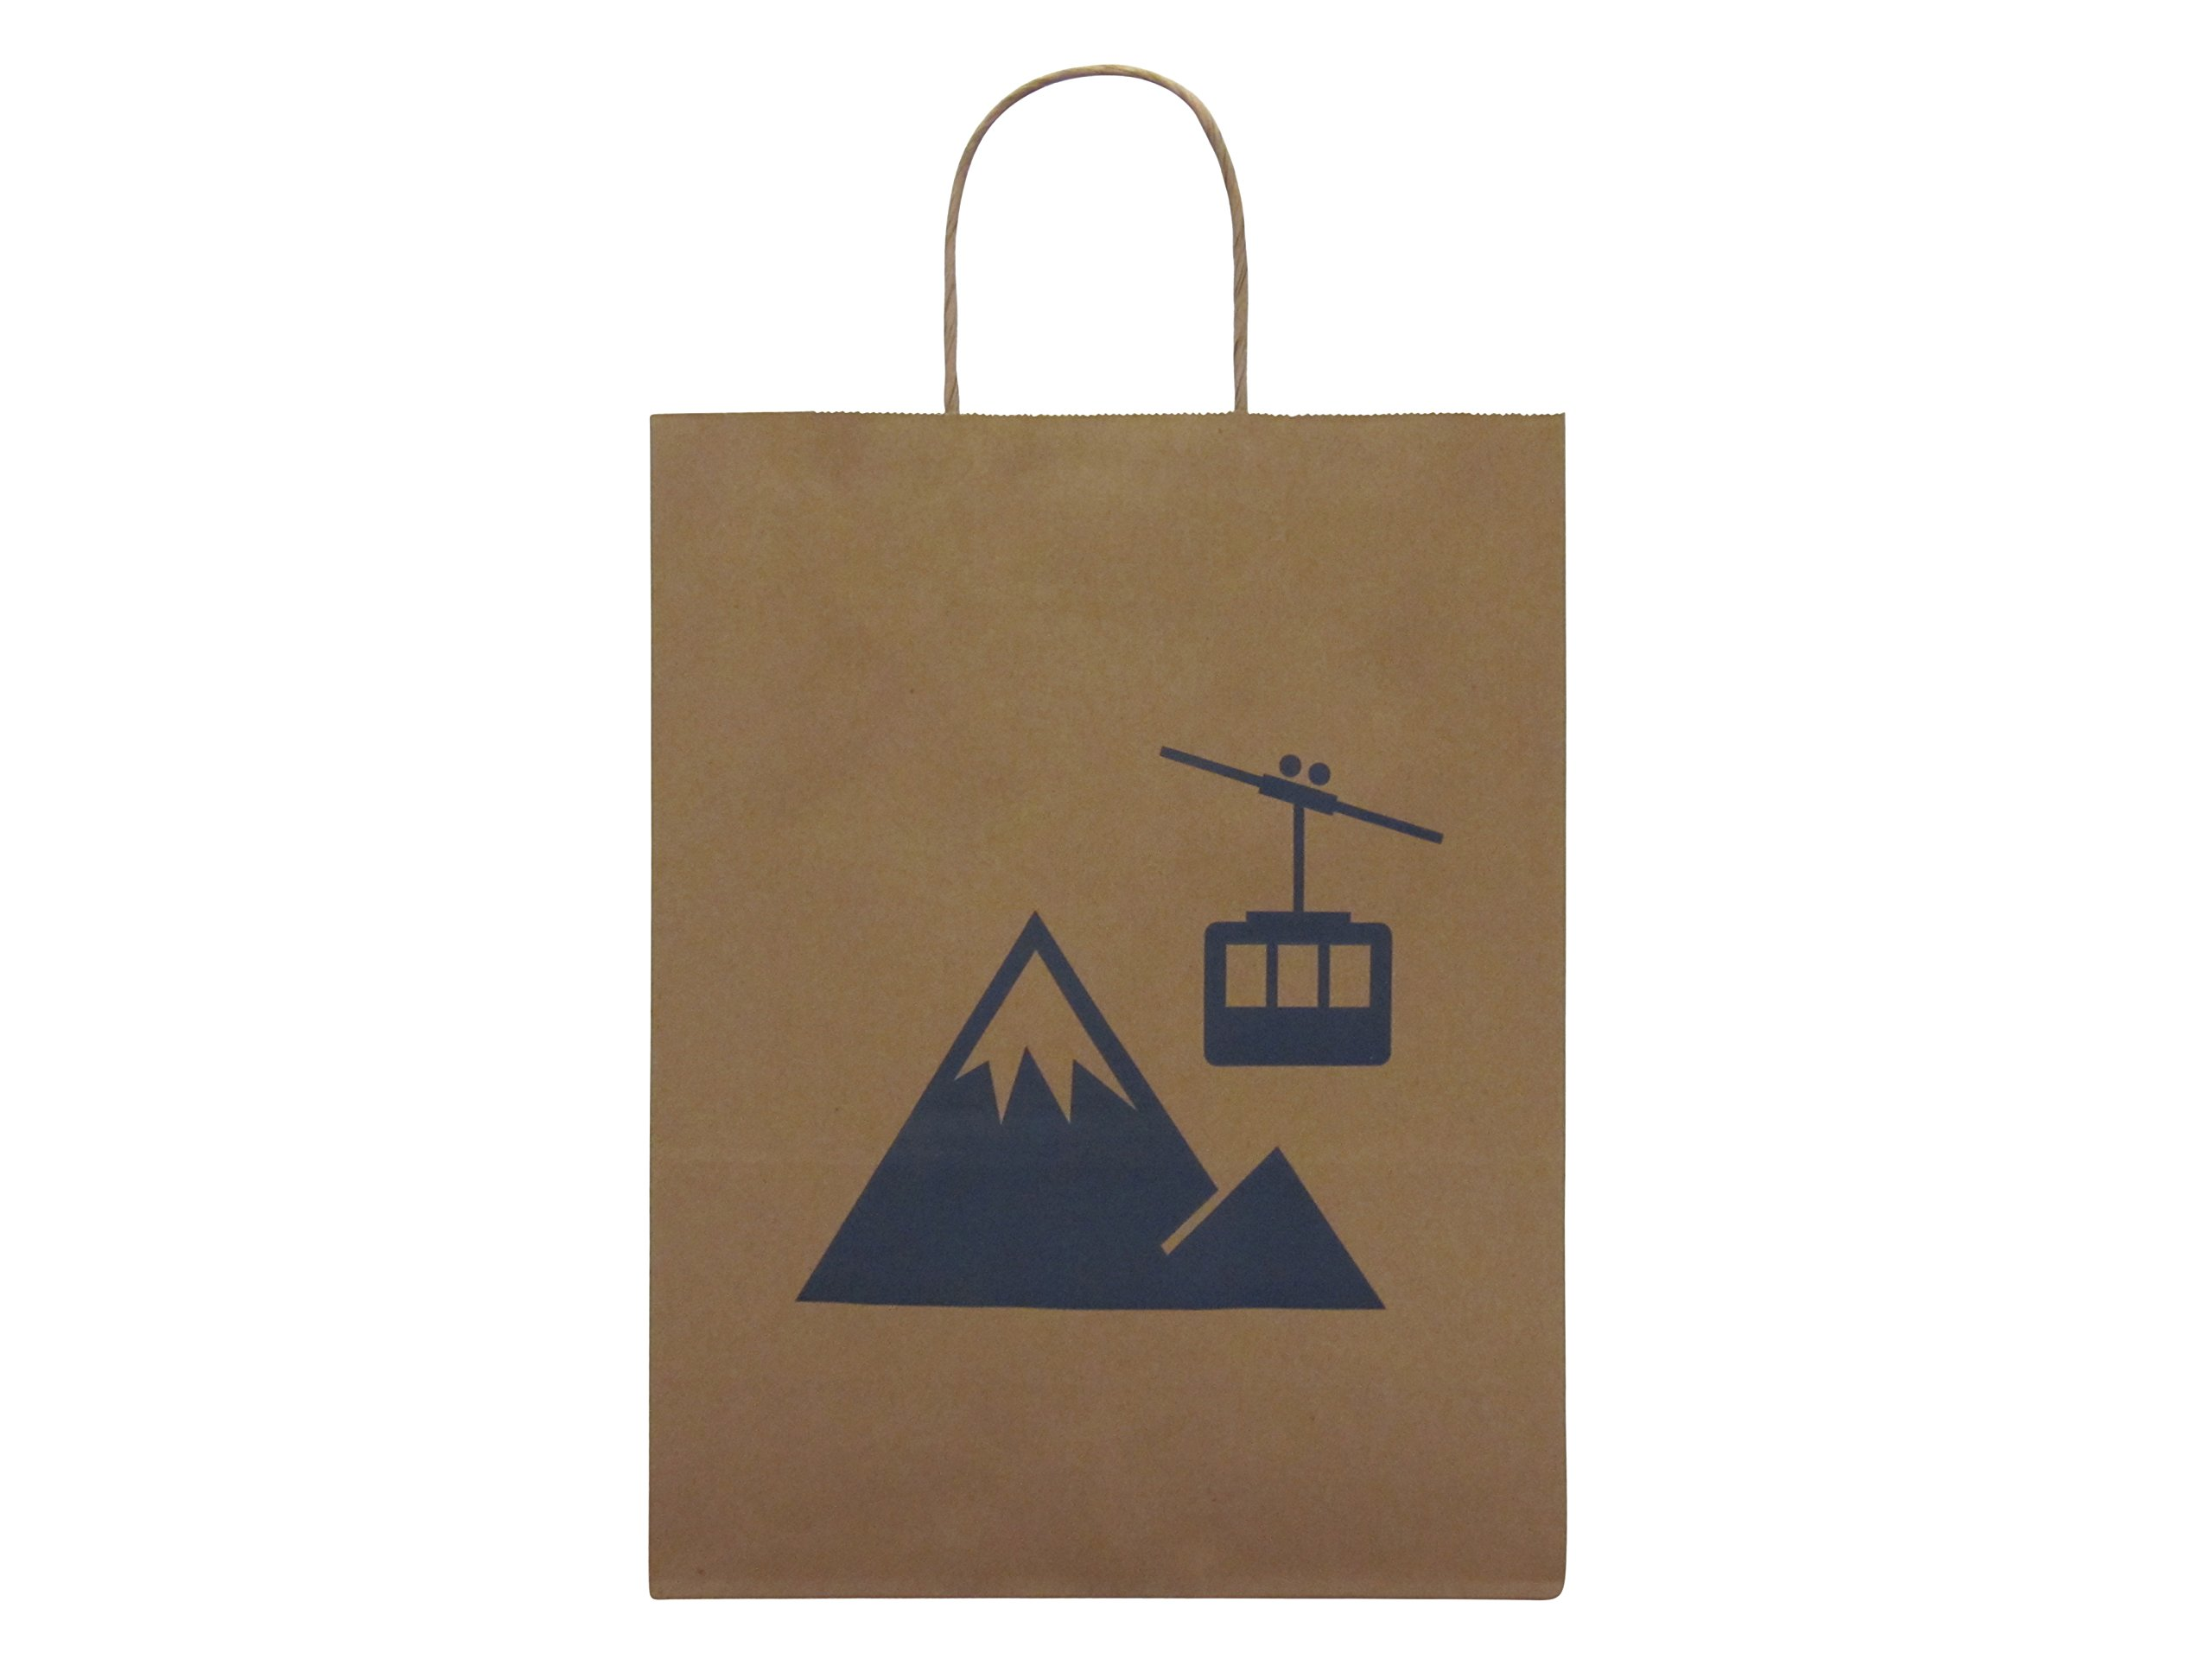 Incredible Packaging - 8'' x 5'' x 10'' Brown CUSTOM Kraft Paper Bags with Handles for Shopping, Retail and Merchandise. Strong and Reusable. (White, 4000) by Incredible Packaging (Image #4)